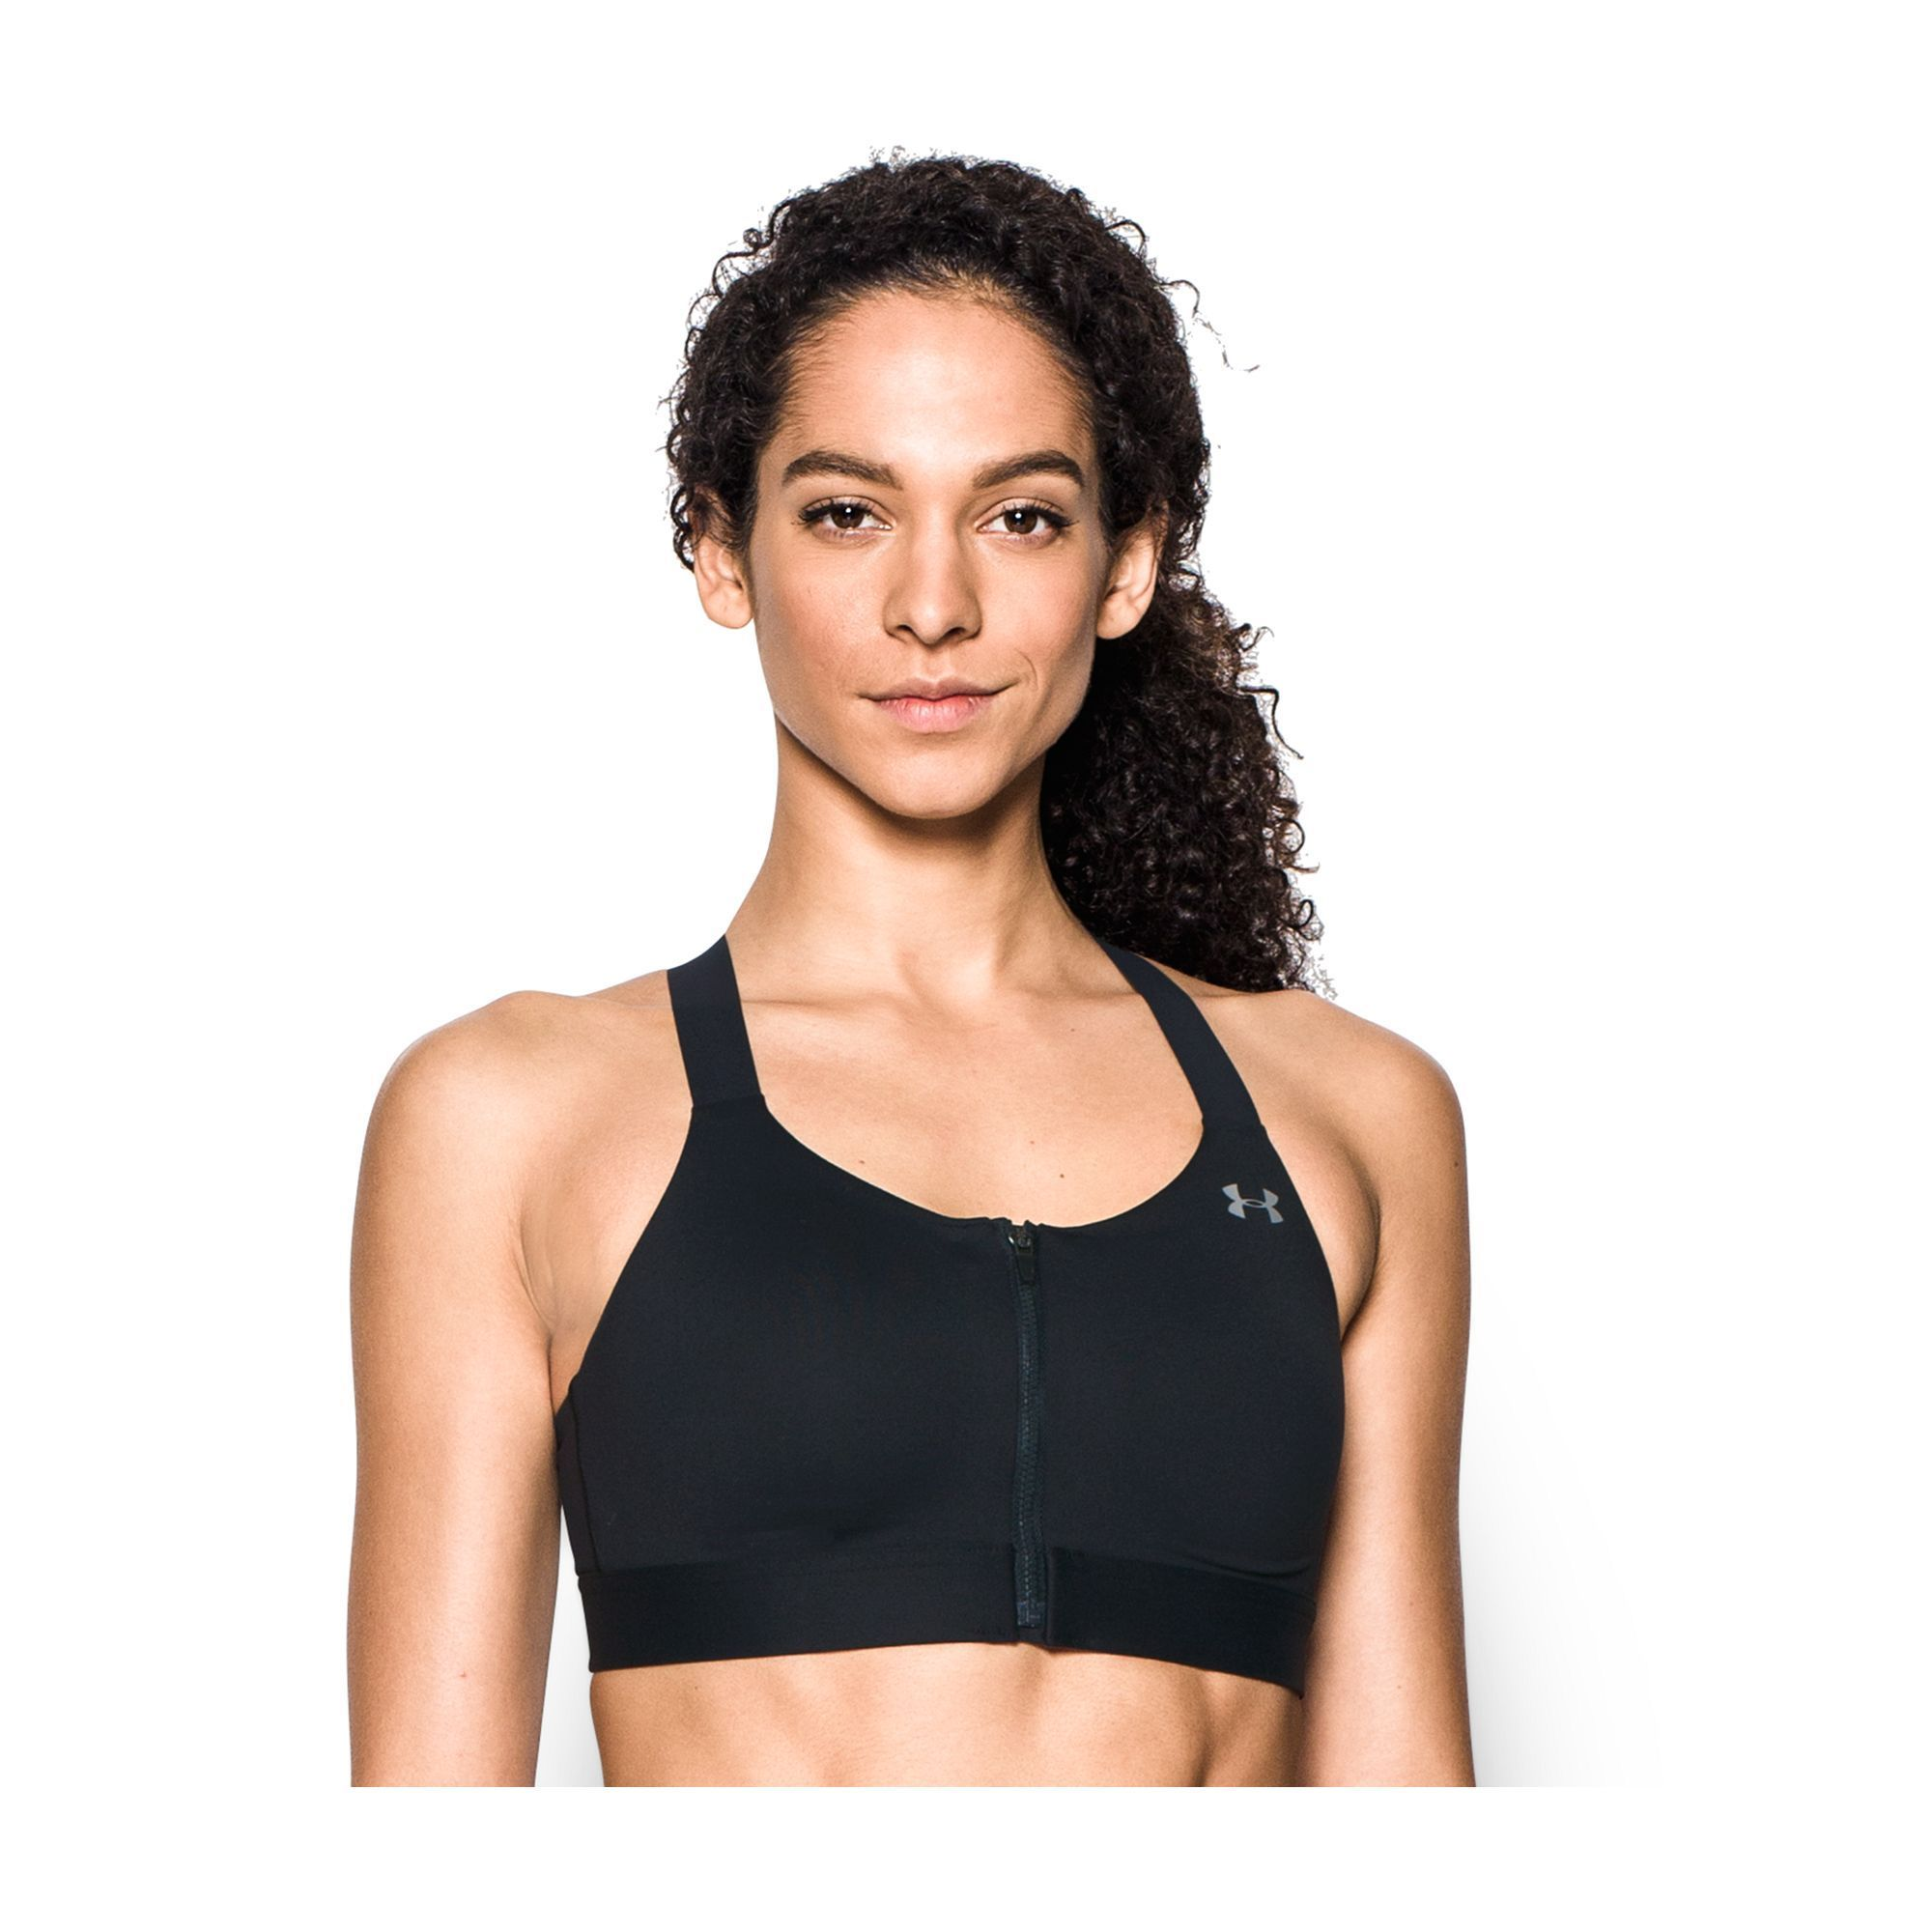 ab3ad66f57 Under Armour Bras  Armour Eclipse Zip Front High-Impact Sports Bra 1293829